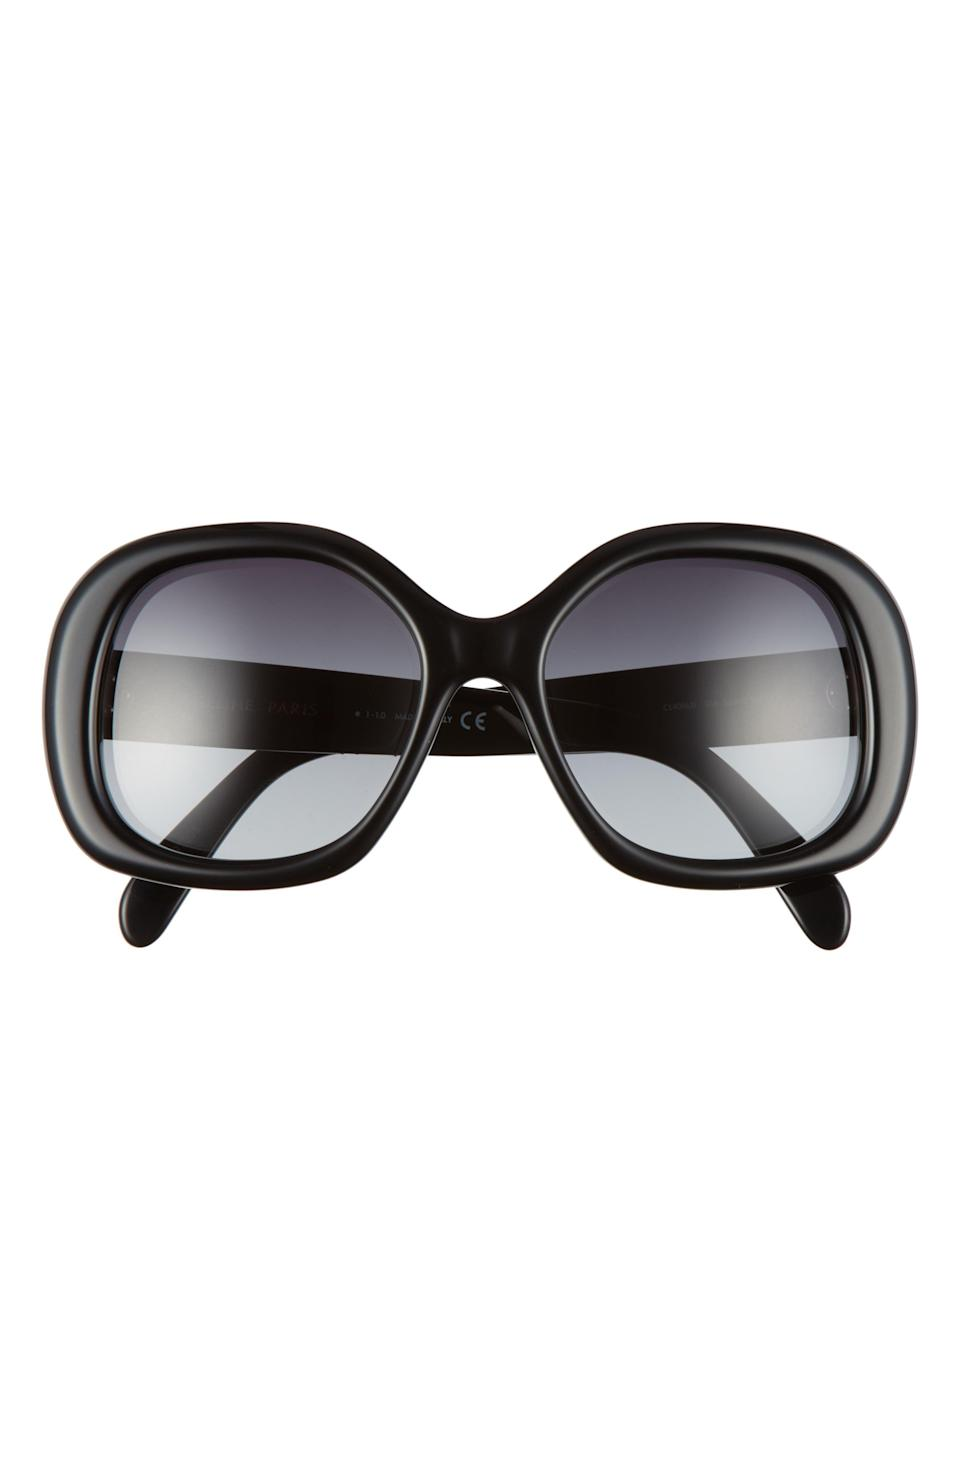 """<p><strong>Celine</strong></p><p>nordstrom.com</p><p><strong>$240.00</strong></p><p><a href=""""https://go.redirectingat.com?id=74968X1596630&url=https%3A%2F%2Fwww.nordstrom.com%2Fs%2Fceline-55mm-gradient-round-sunglasses%2F5713644&sref=https%3A%2F%2Fwww.harpersbazaar.com%2Ffashion%2Fg34974716%2Flast-minute-gifts-on-sale%2F"""" rel=""""nofollow noopener"""" target=""""_blank"""" data-ylk=""""slk:Shop Now"""" class=""""link rapid-noclick-resp"""">Shop Now</a></p><p><strong><del>$400</del> $240 (Save 40%)</strong></p><p>Does it get more glamorous than a pair of slightly oversized round Celine sunnies? (Rhetorical question.) </p>"""